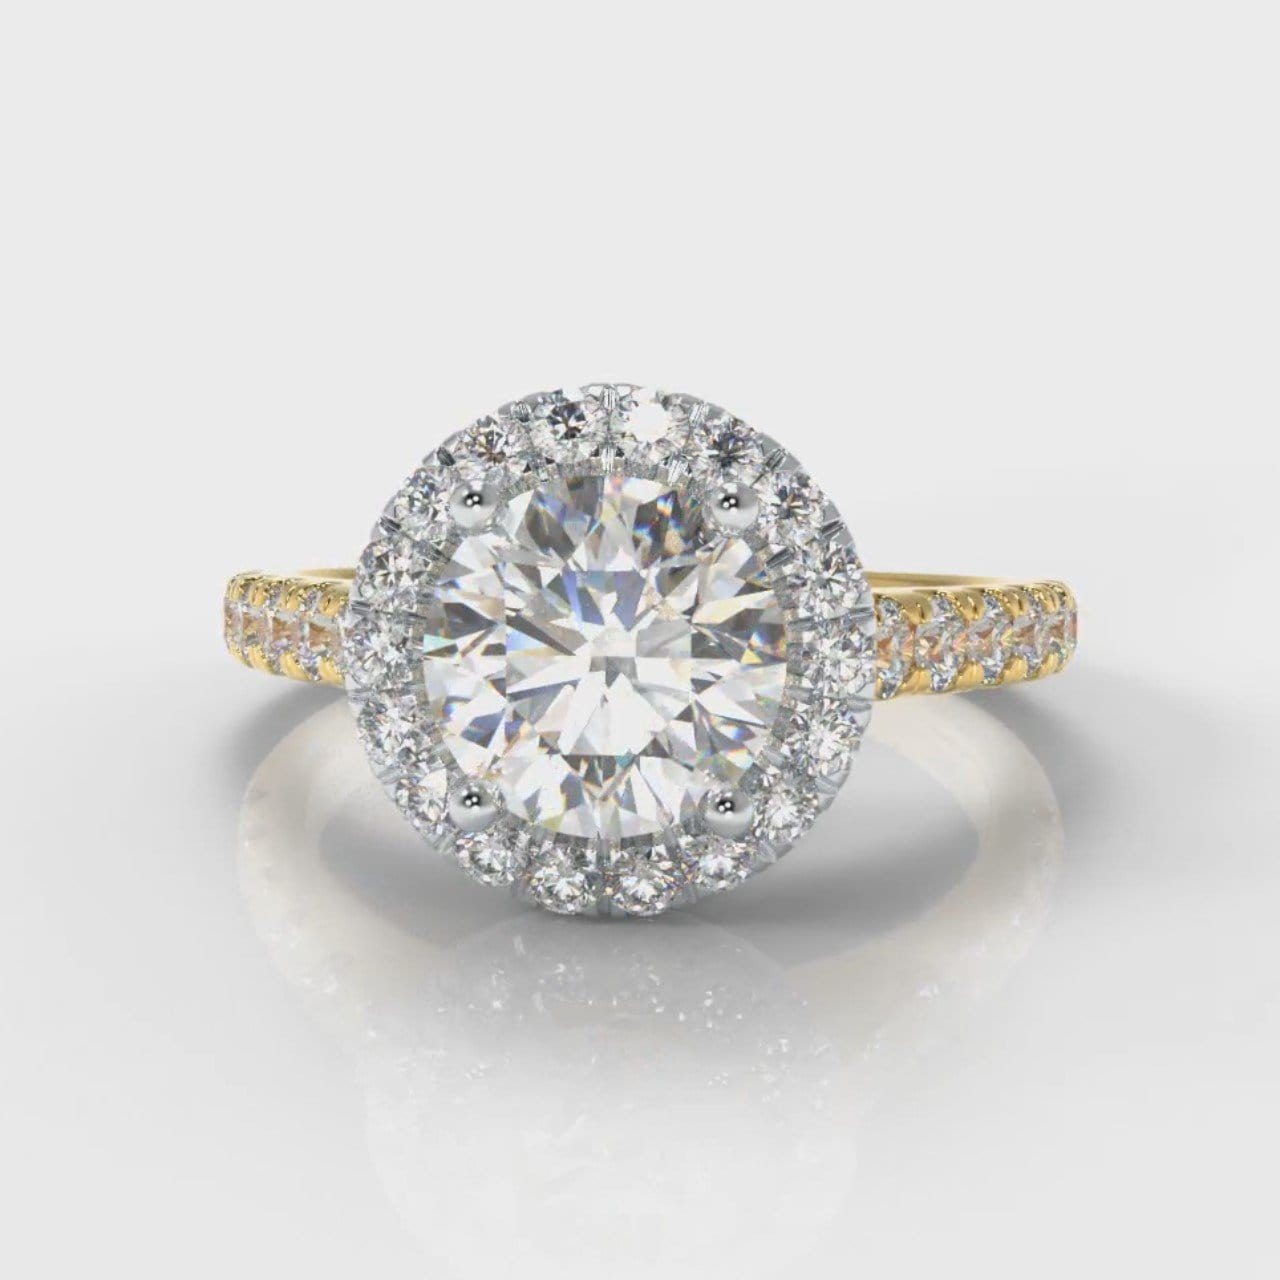 Micropavé Round Brilliant Cut Diamond Halo Engagement Ring - Two Tone Yellow Gold